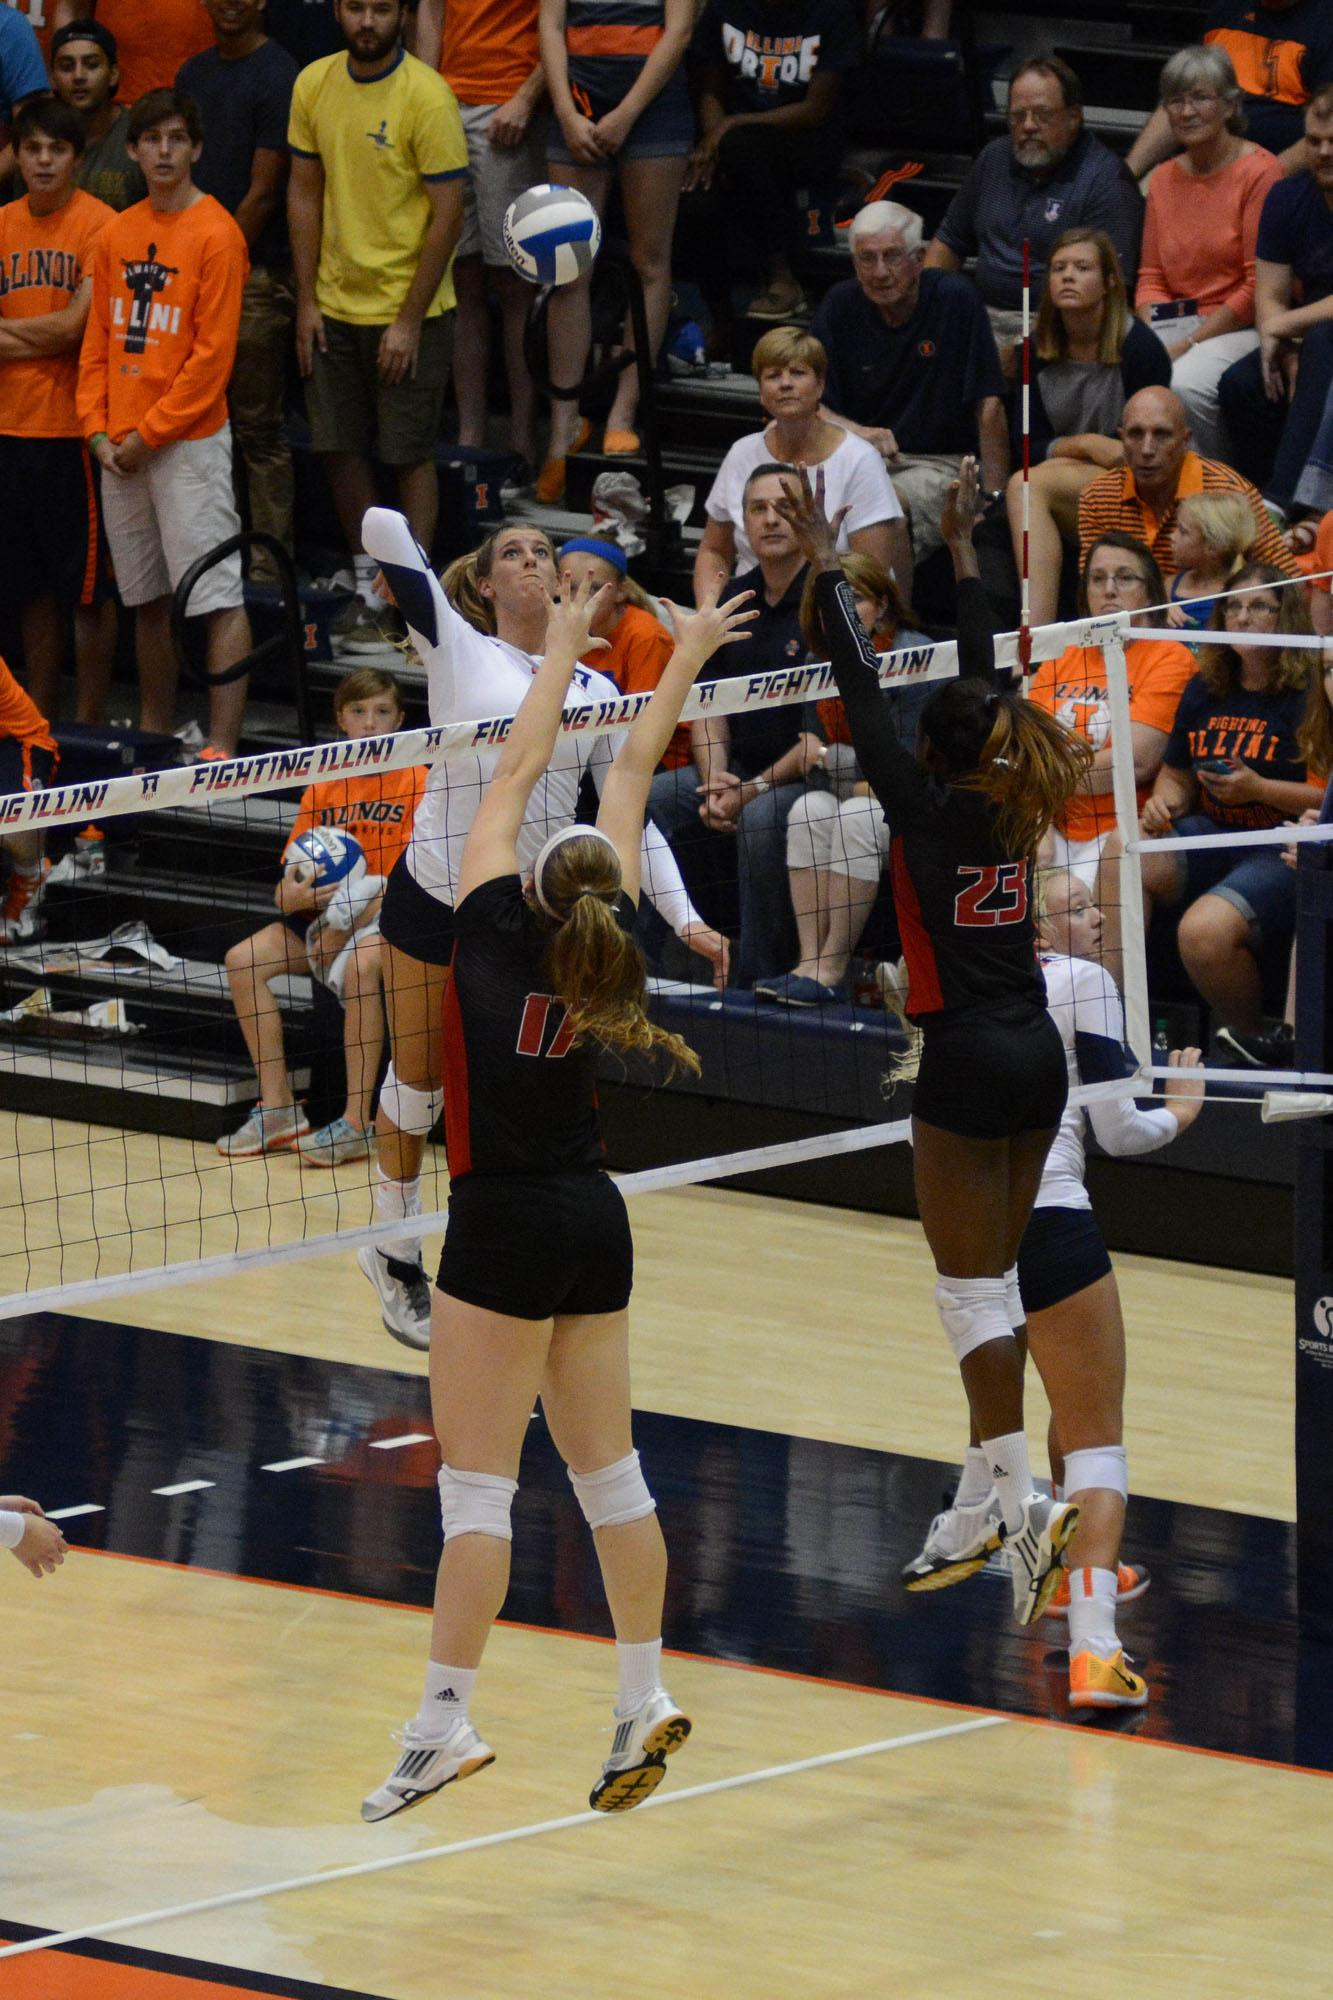 Illinois' Jocelynn Birks (7) attempts to spike the ball during the game versus Louisville at Huff Hall on Friday, August 28, 2015.The Illini won 3-0.